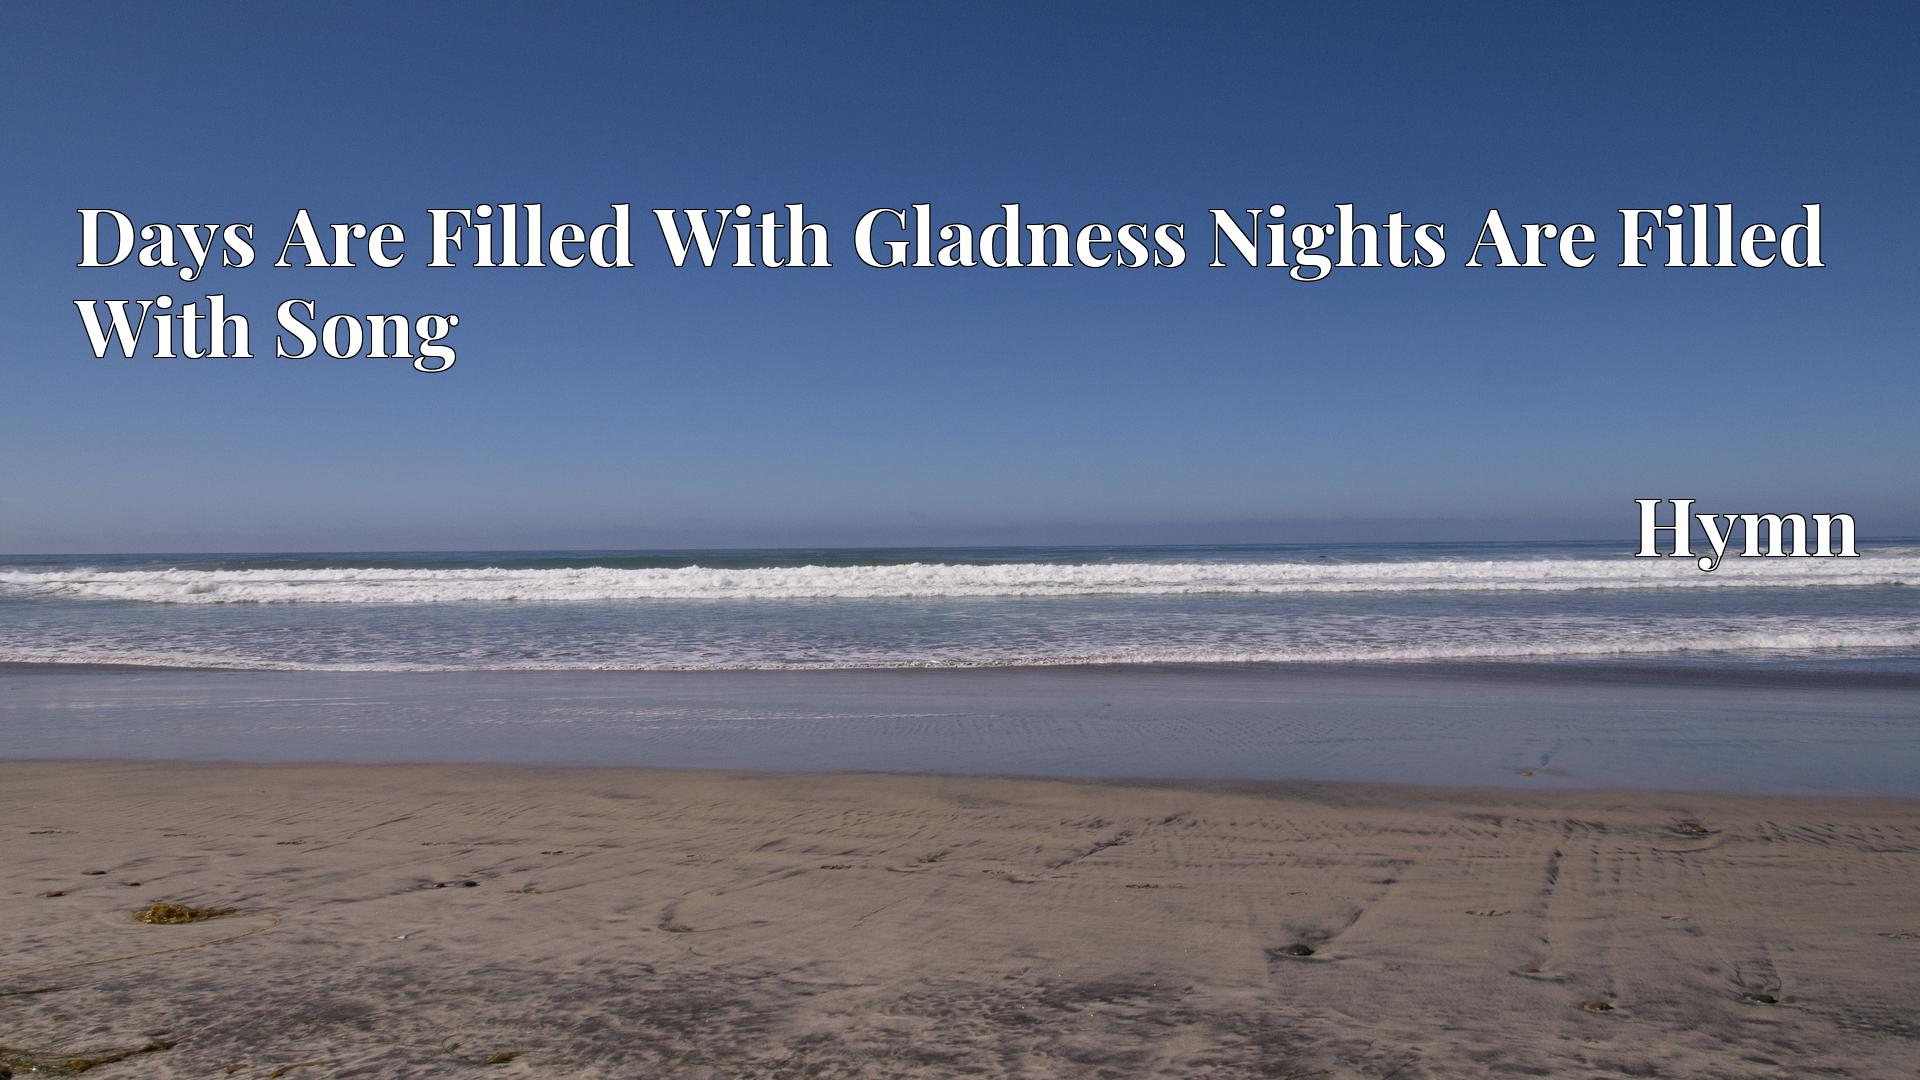 Days Are Filled With Gladness Nights Are Filled With Song - Hymn